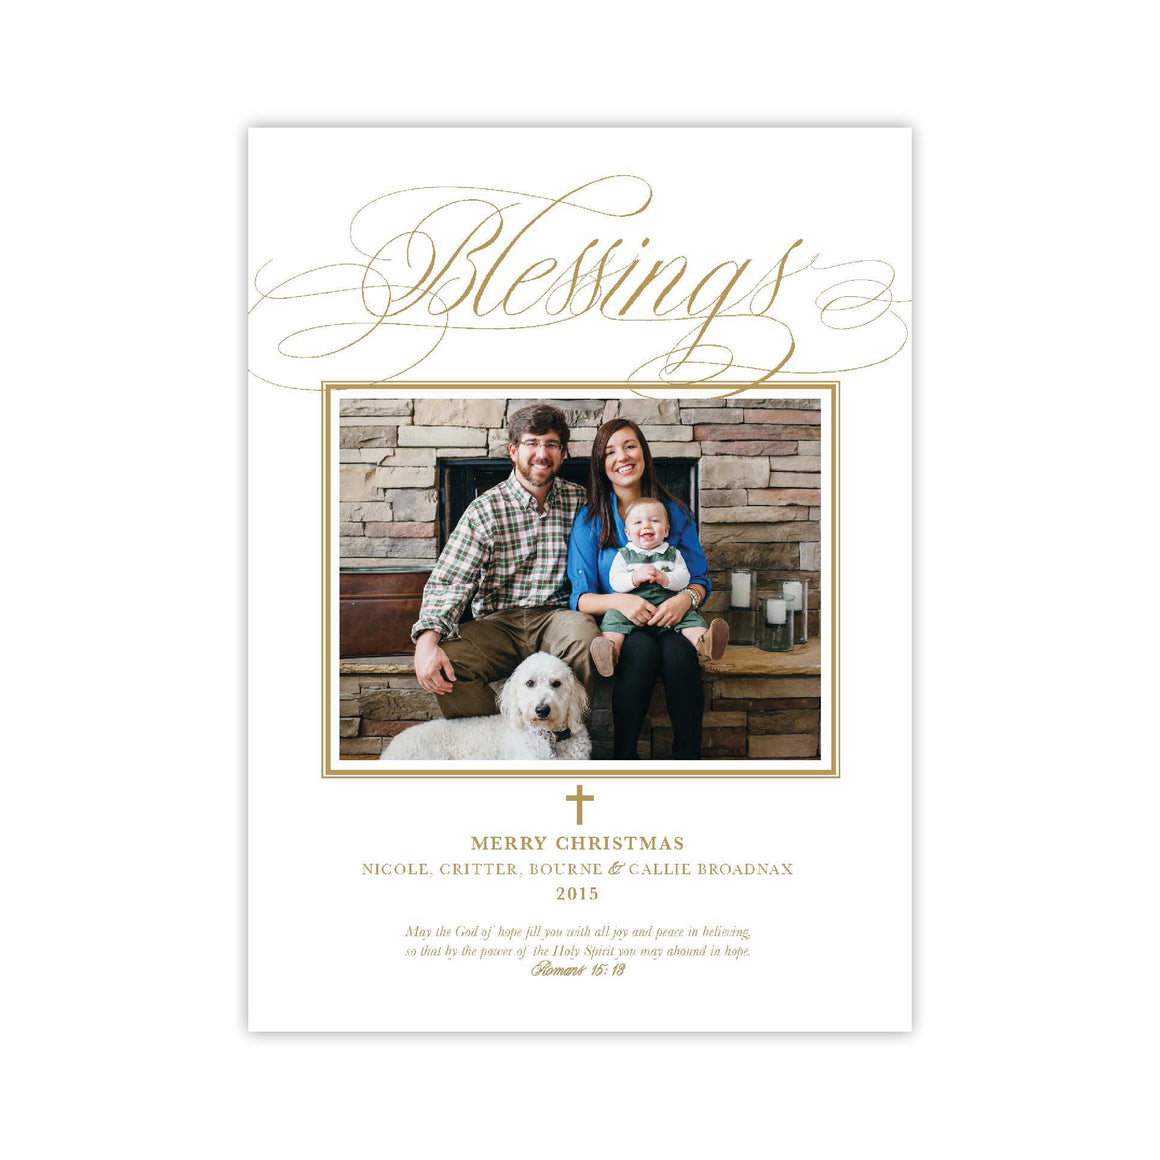 Blessings Christmas Holiday Card